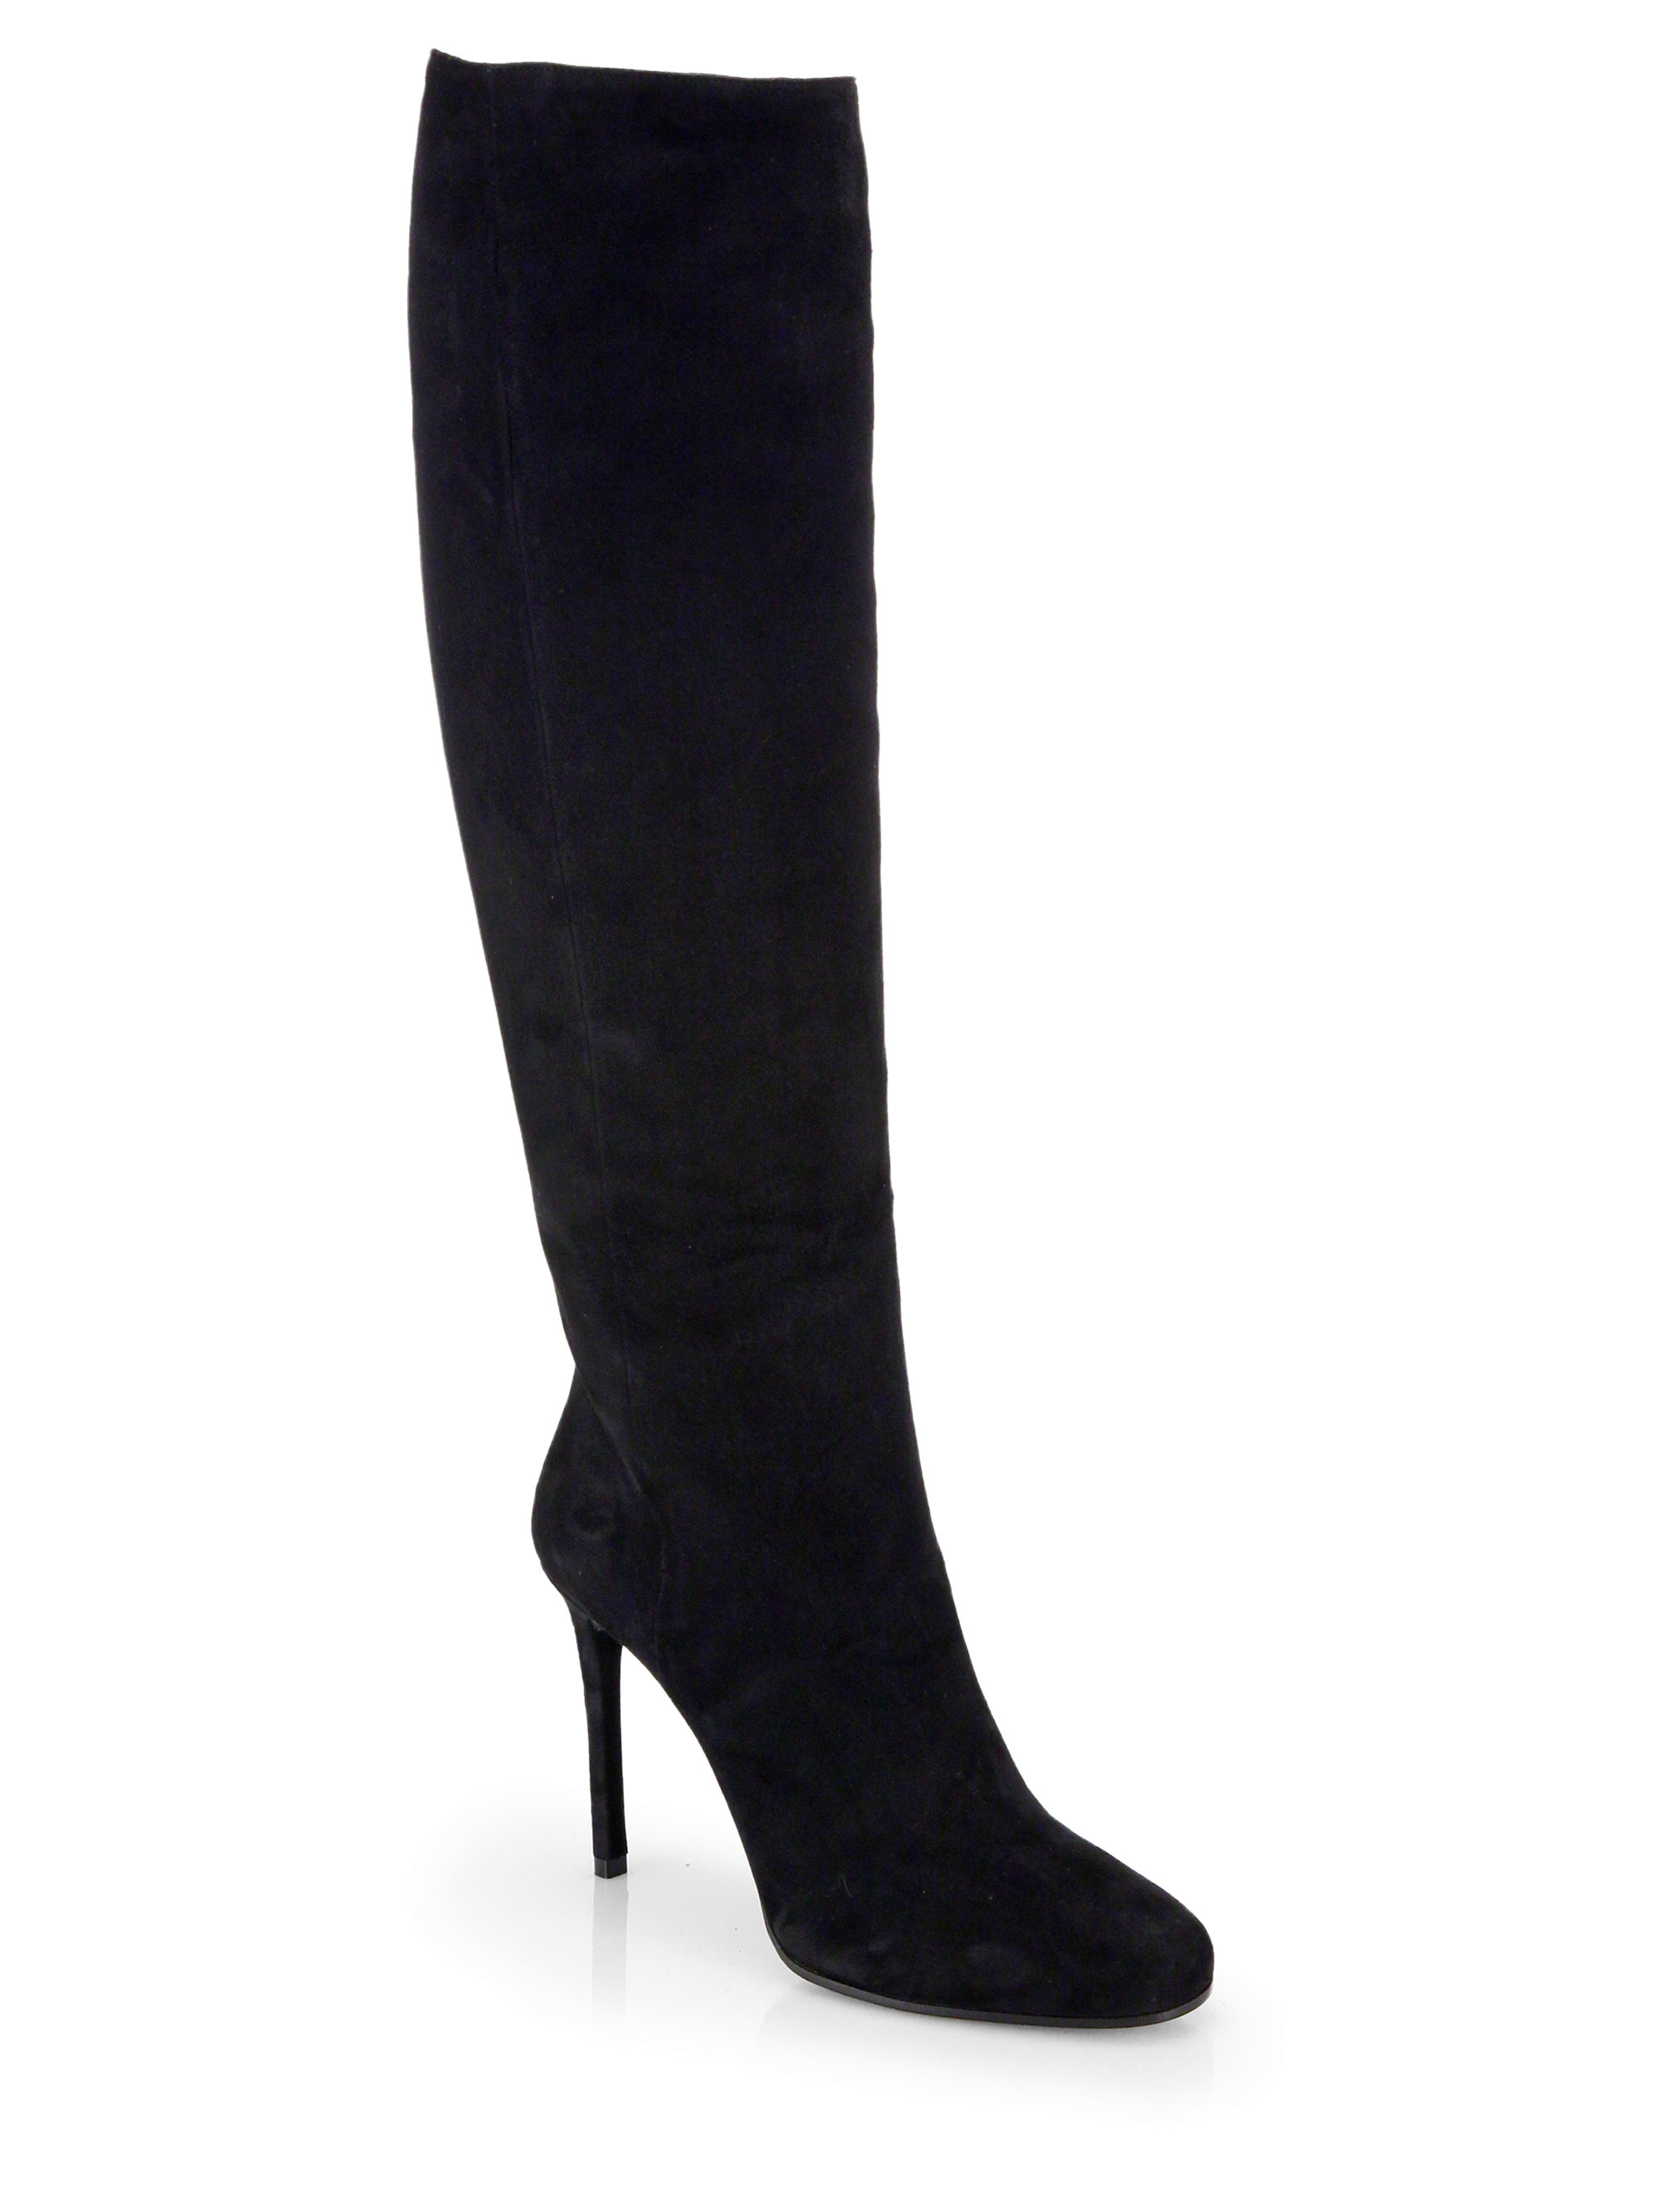 prada suede knee high boots in black nero lyst